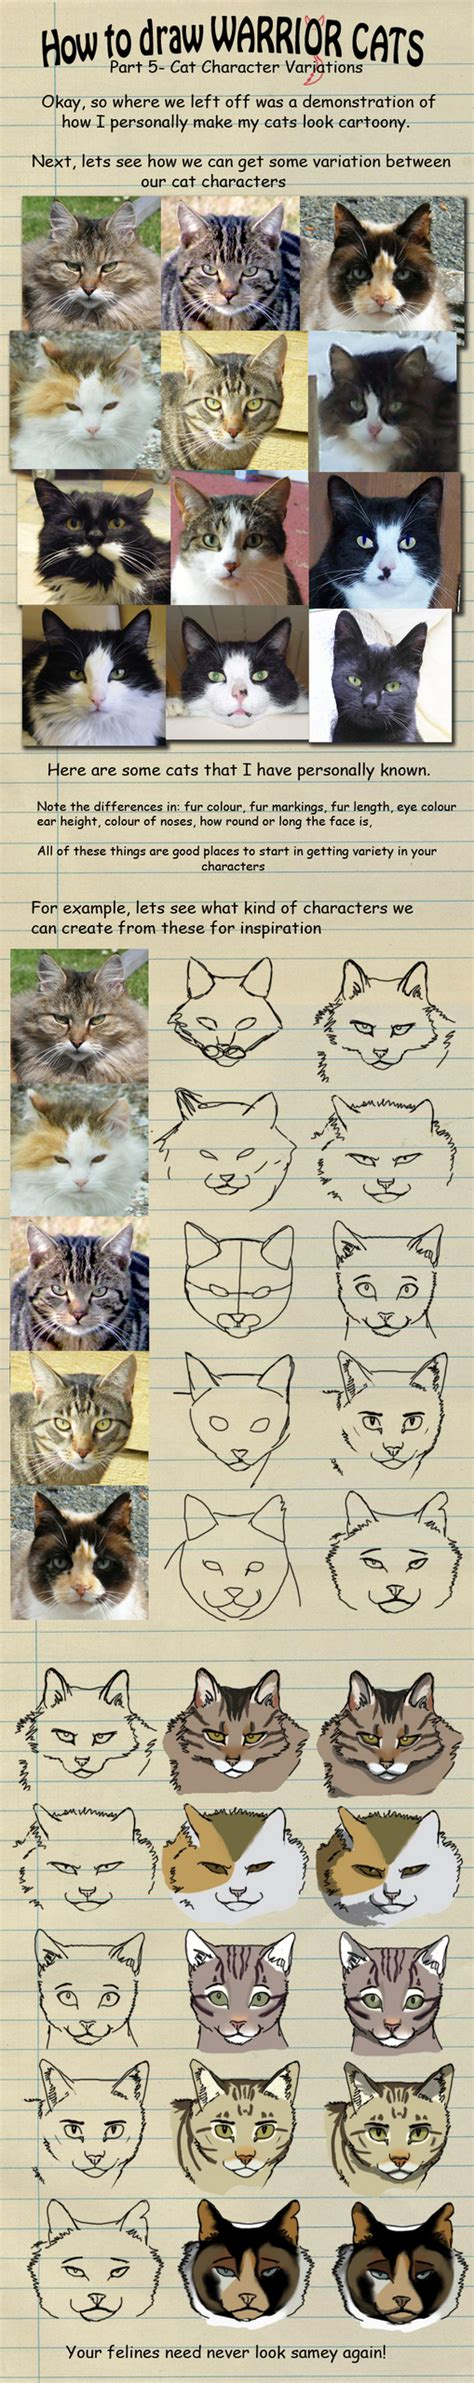 warrior cat obsessed fan club images   draw  warrior